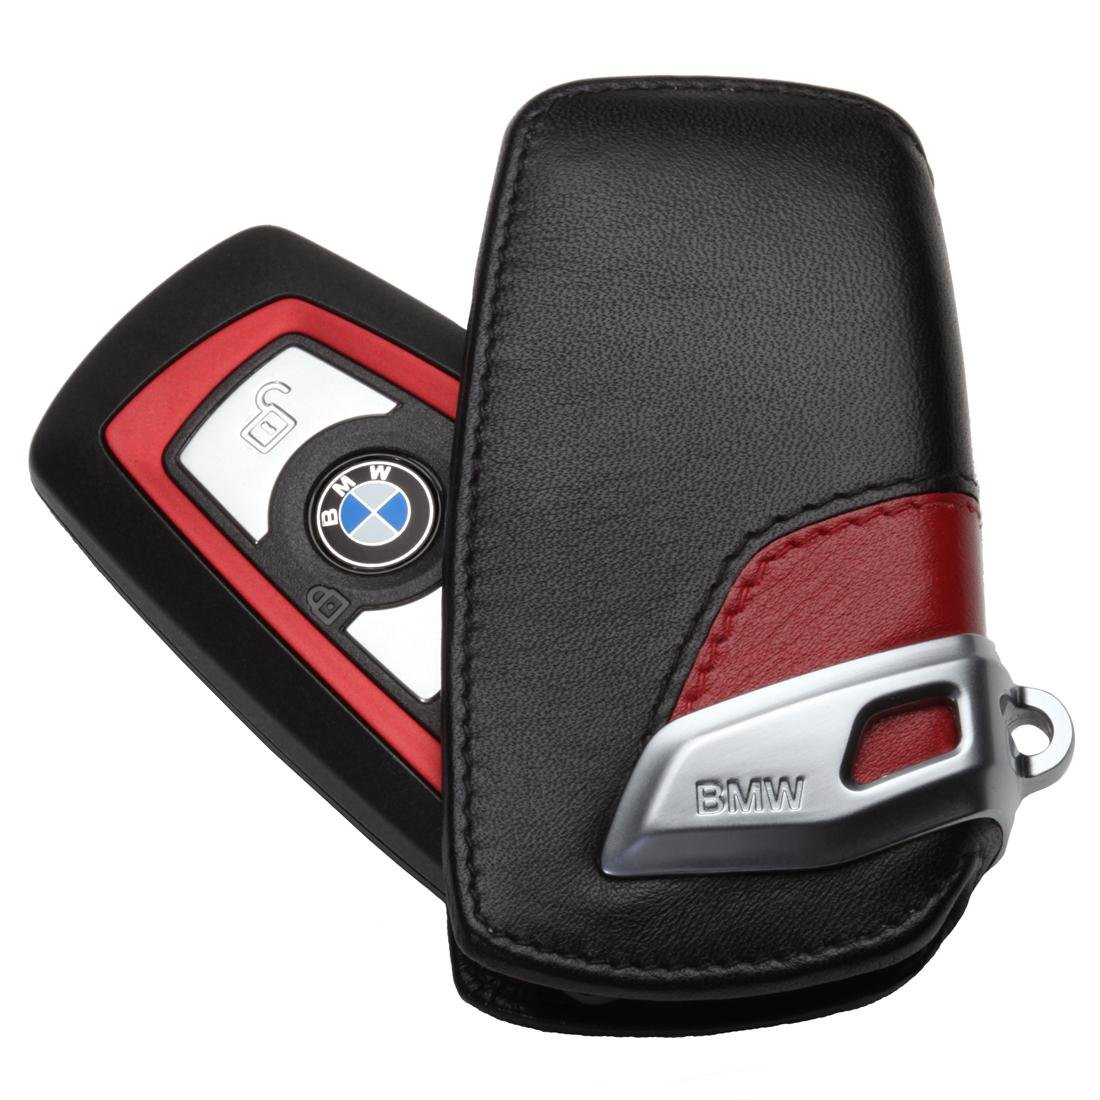 BMW Genuine Key Holder Fob Leather Case/Cover Sport Line Red (82 29 2 219 909) 82292219909